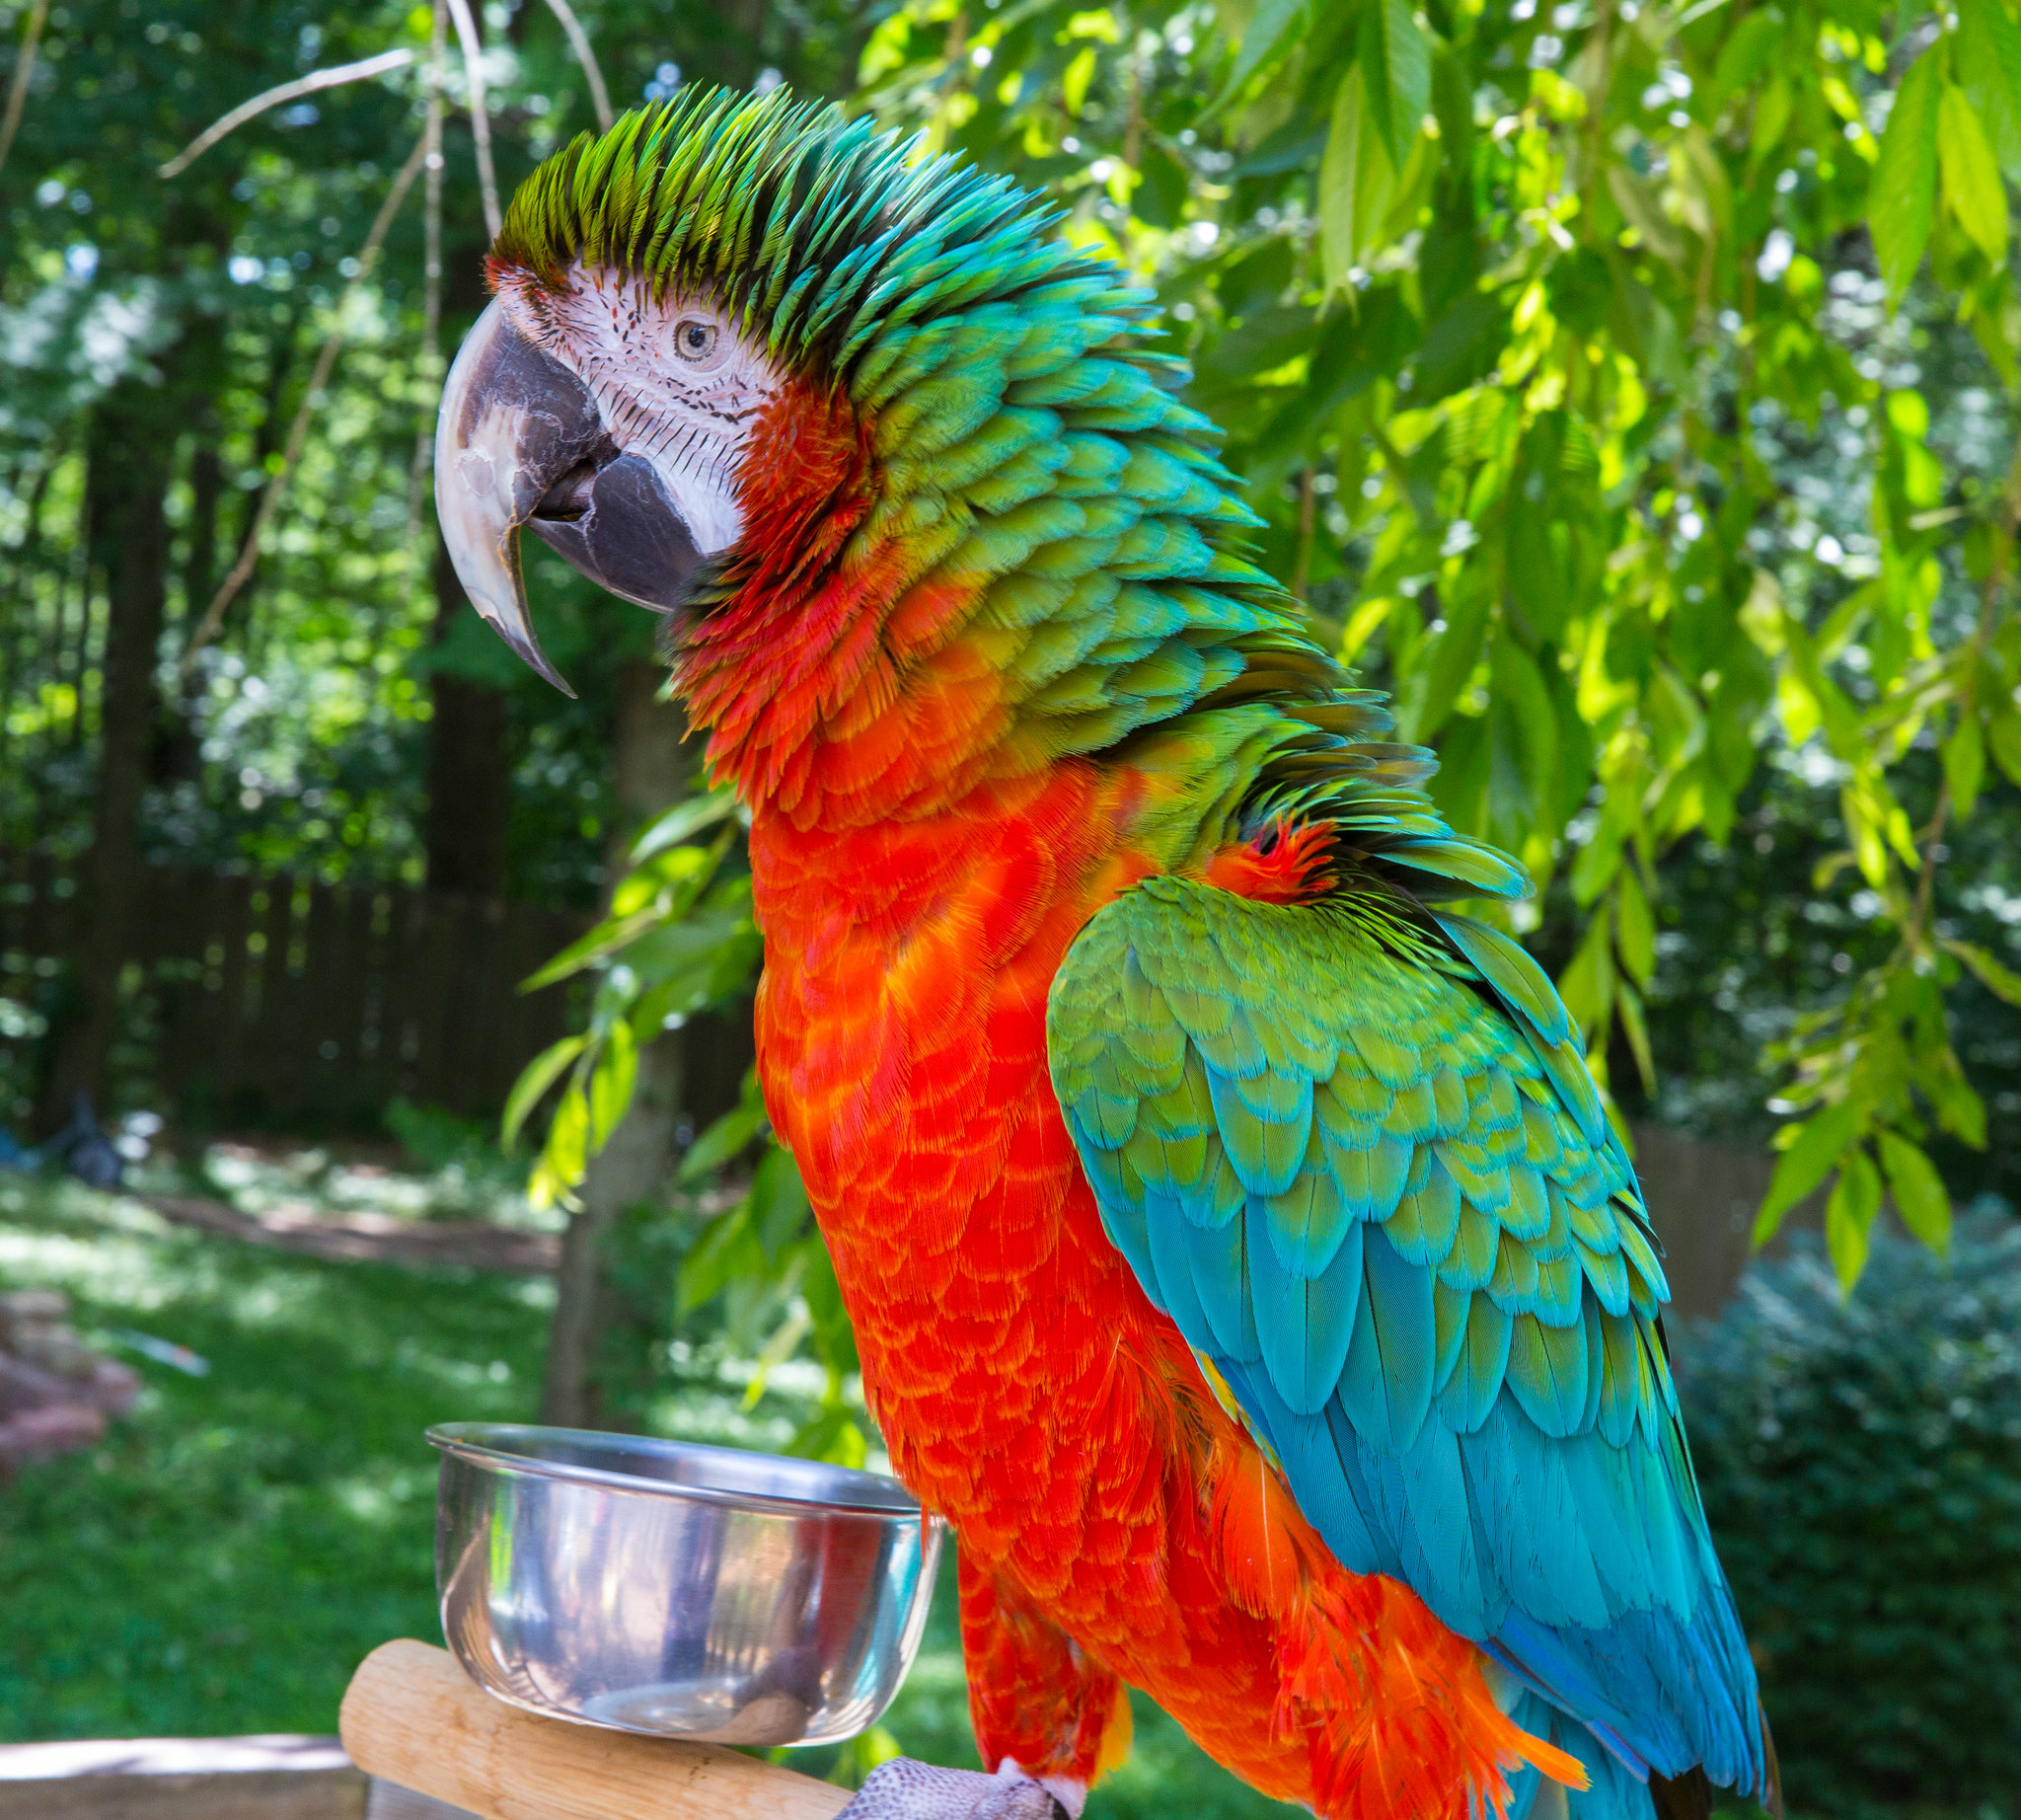 Catalina or Harlequin? - Parrot Forum - Parrot Owner's Community